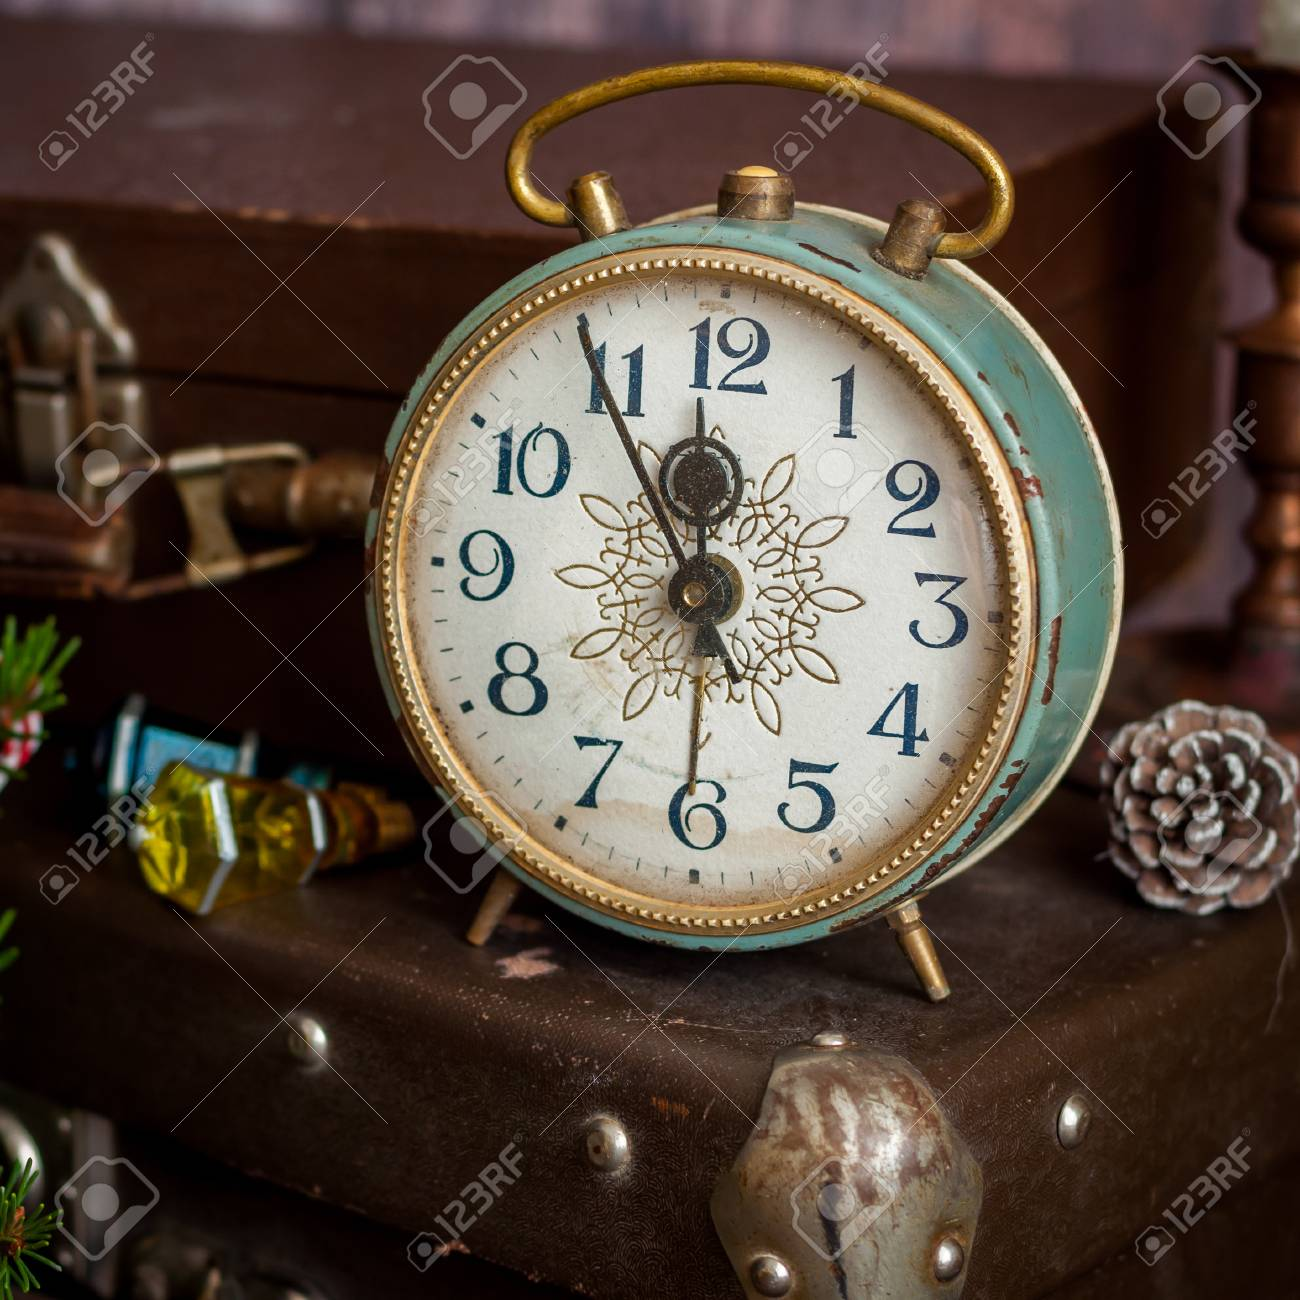 Vintage Retro Style Alarm Clock And Old Fashioned Suitcases Stock